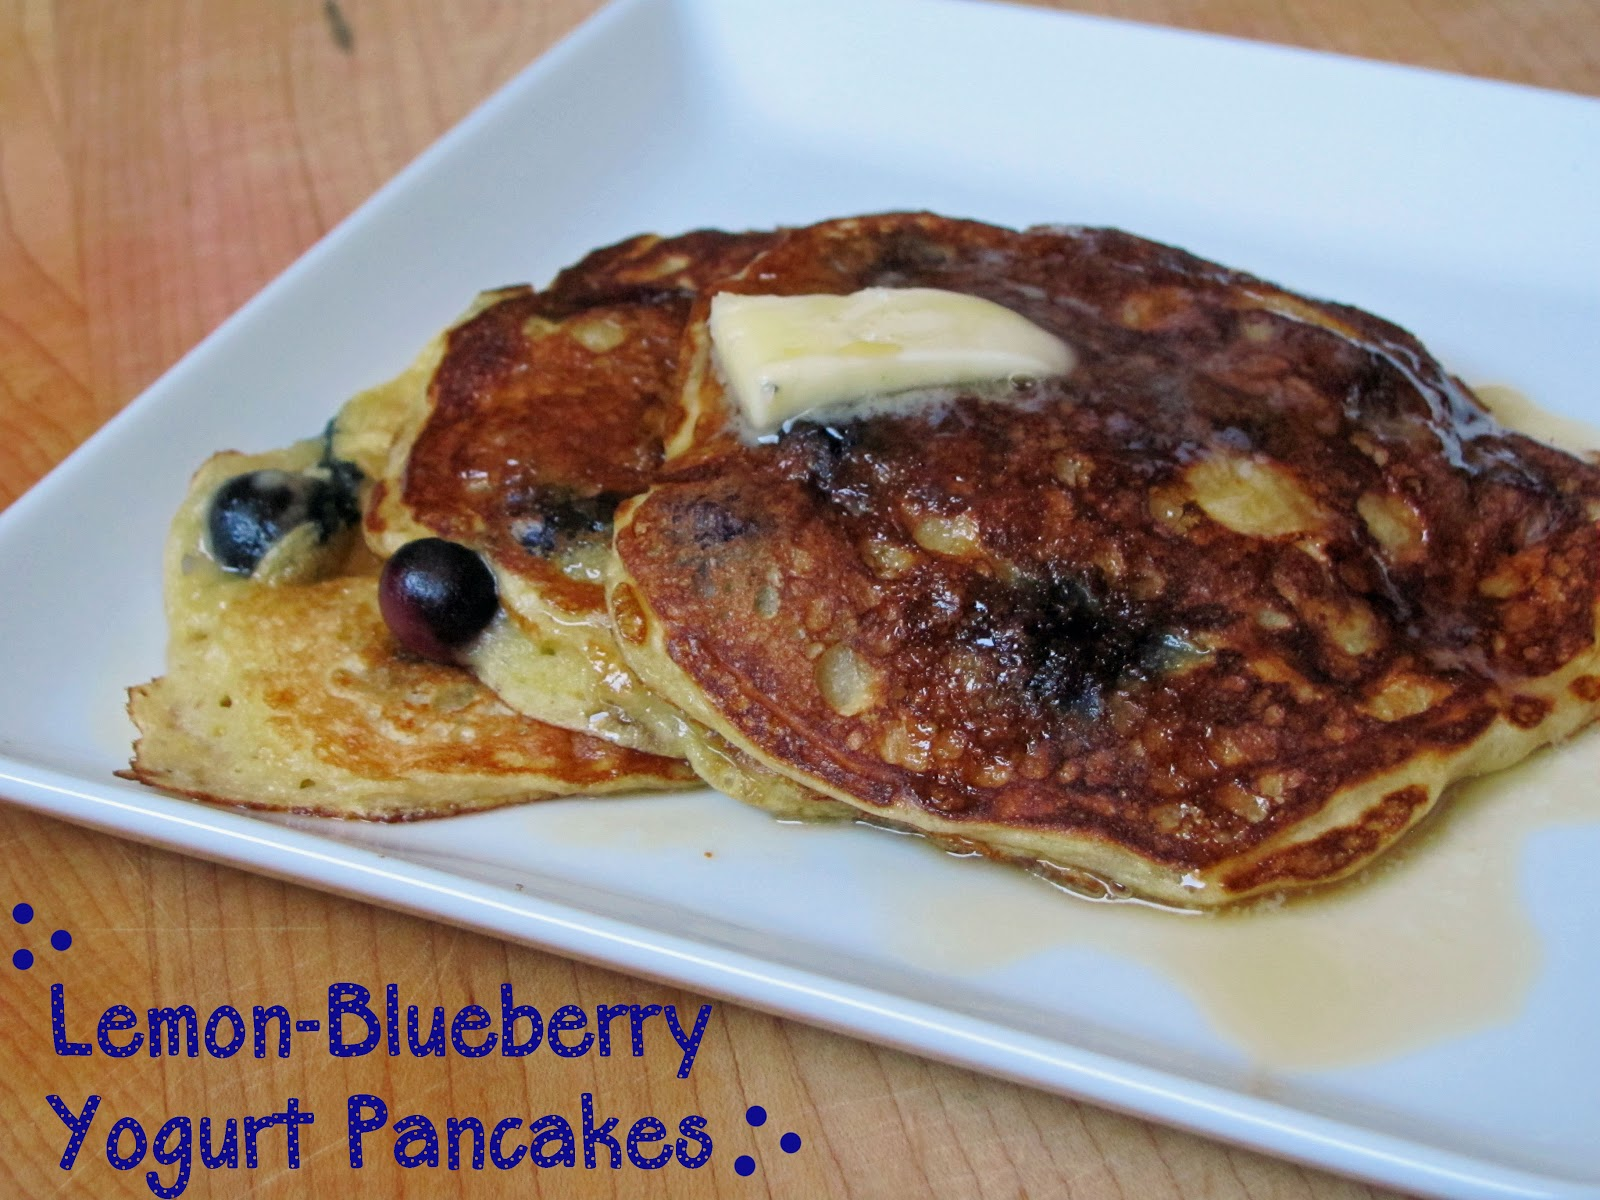 ... Girl Cooks: Lemon-Blueberry Yogurt Pancakes {Chobani Yogurt Giveaway